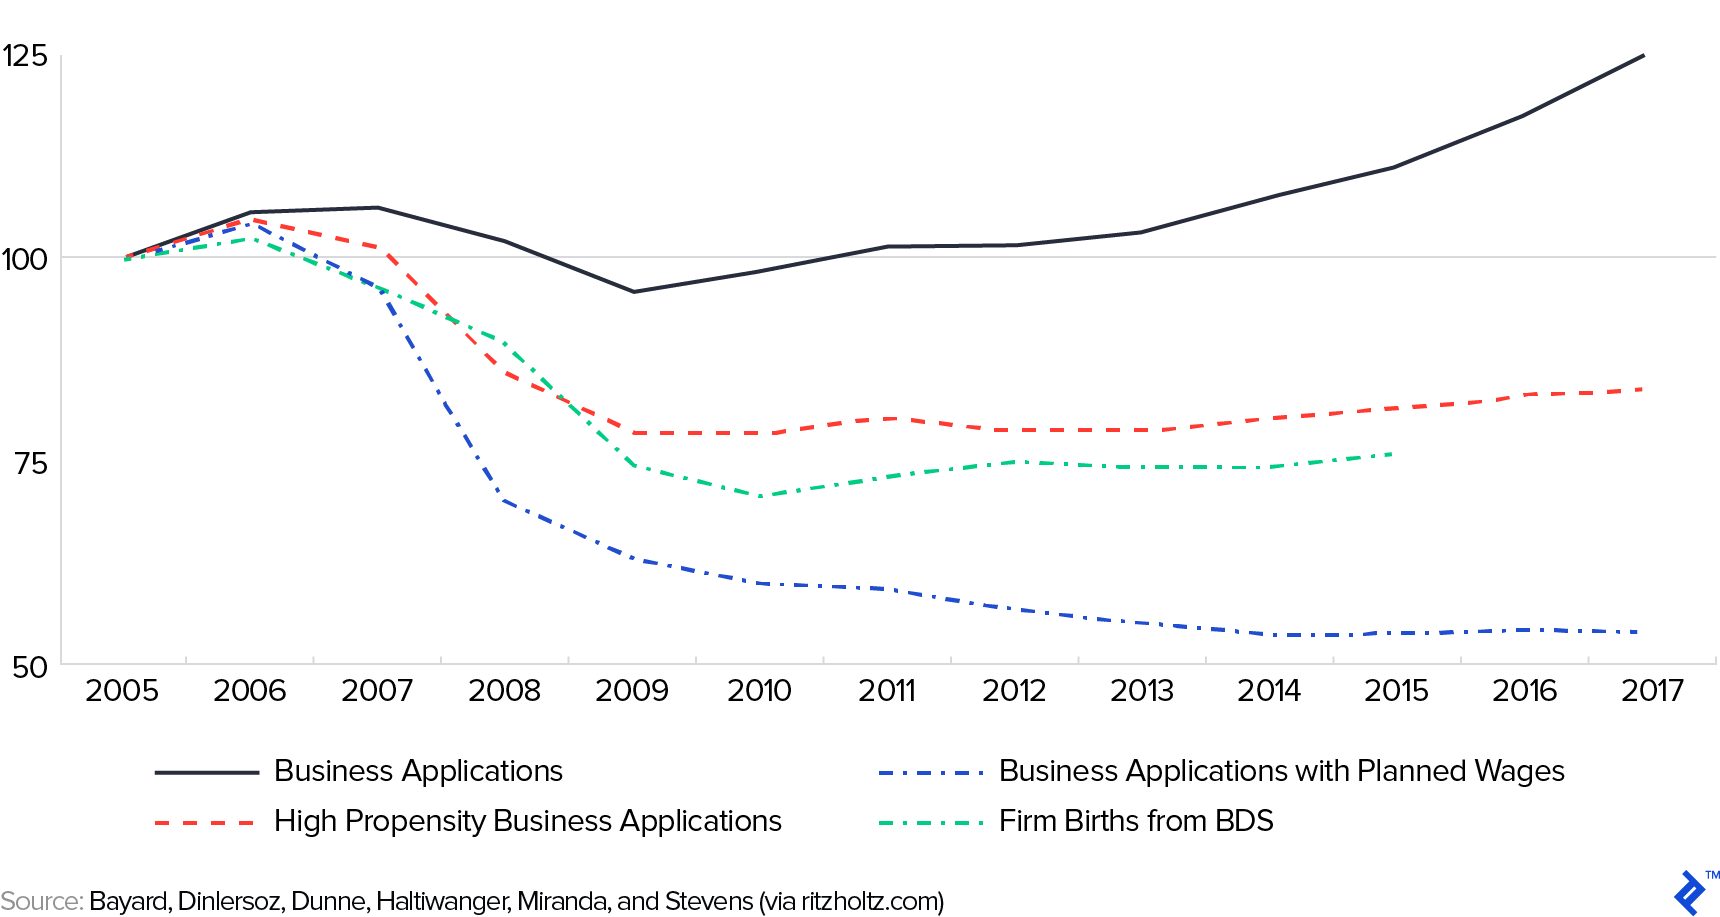 USA Business Applications and New Business Formation Statistics